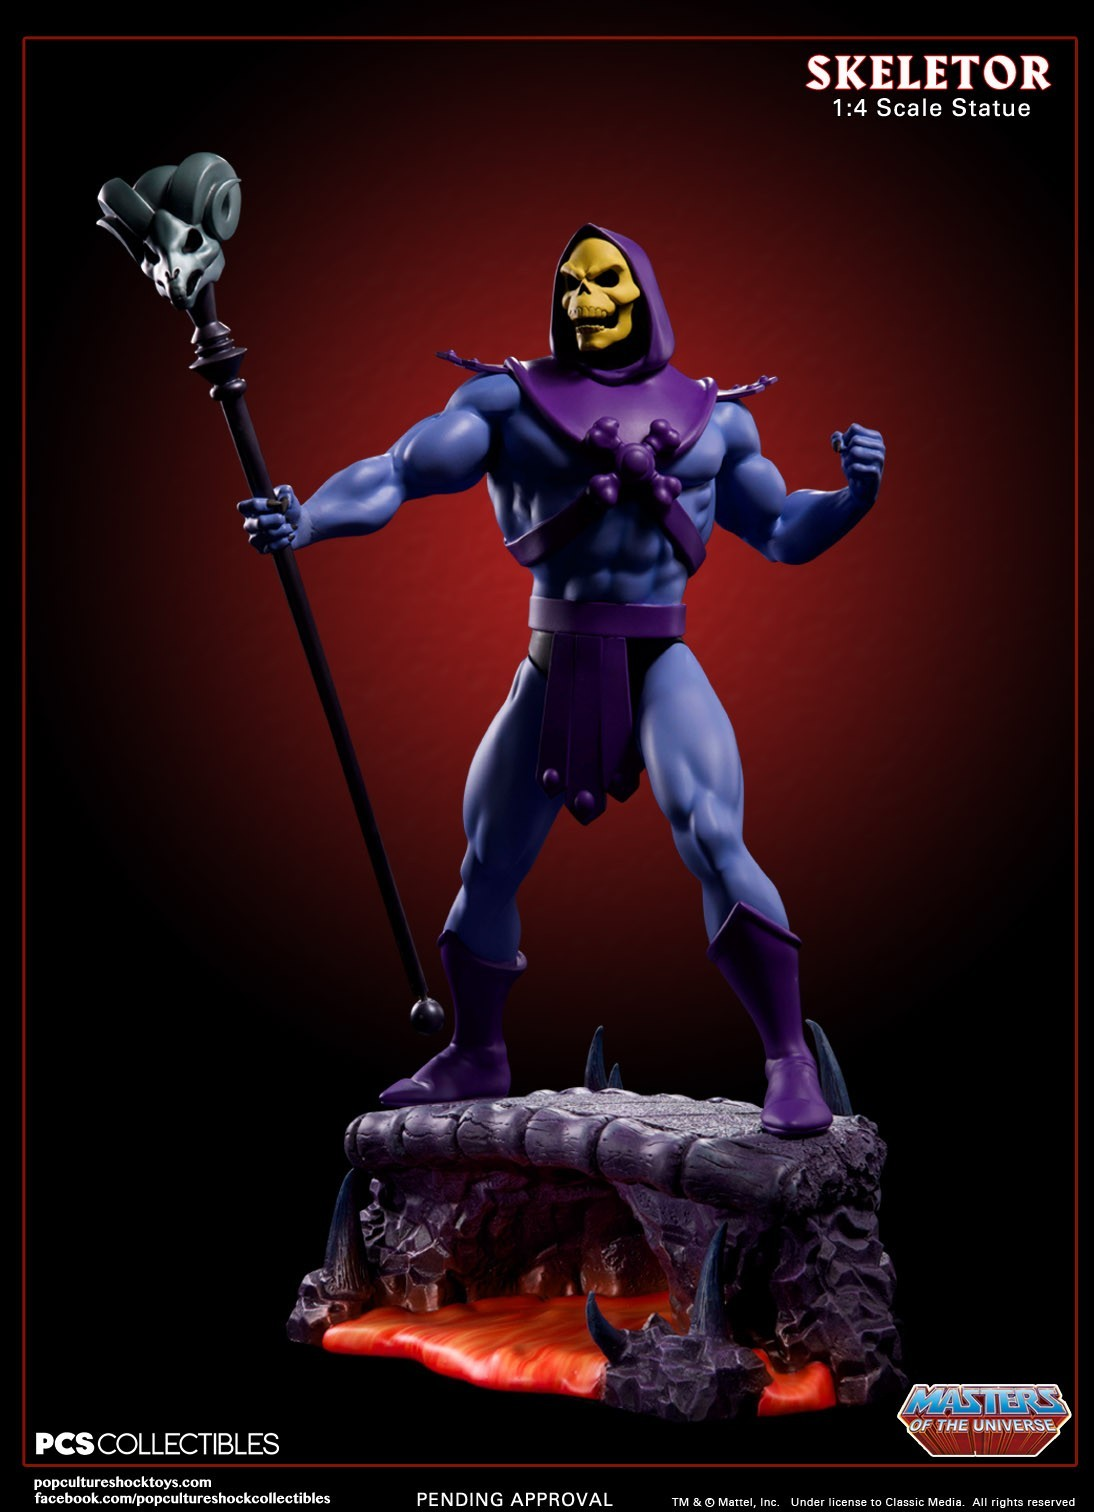 Alejandro pereira skeletor media c 1